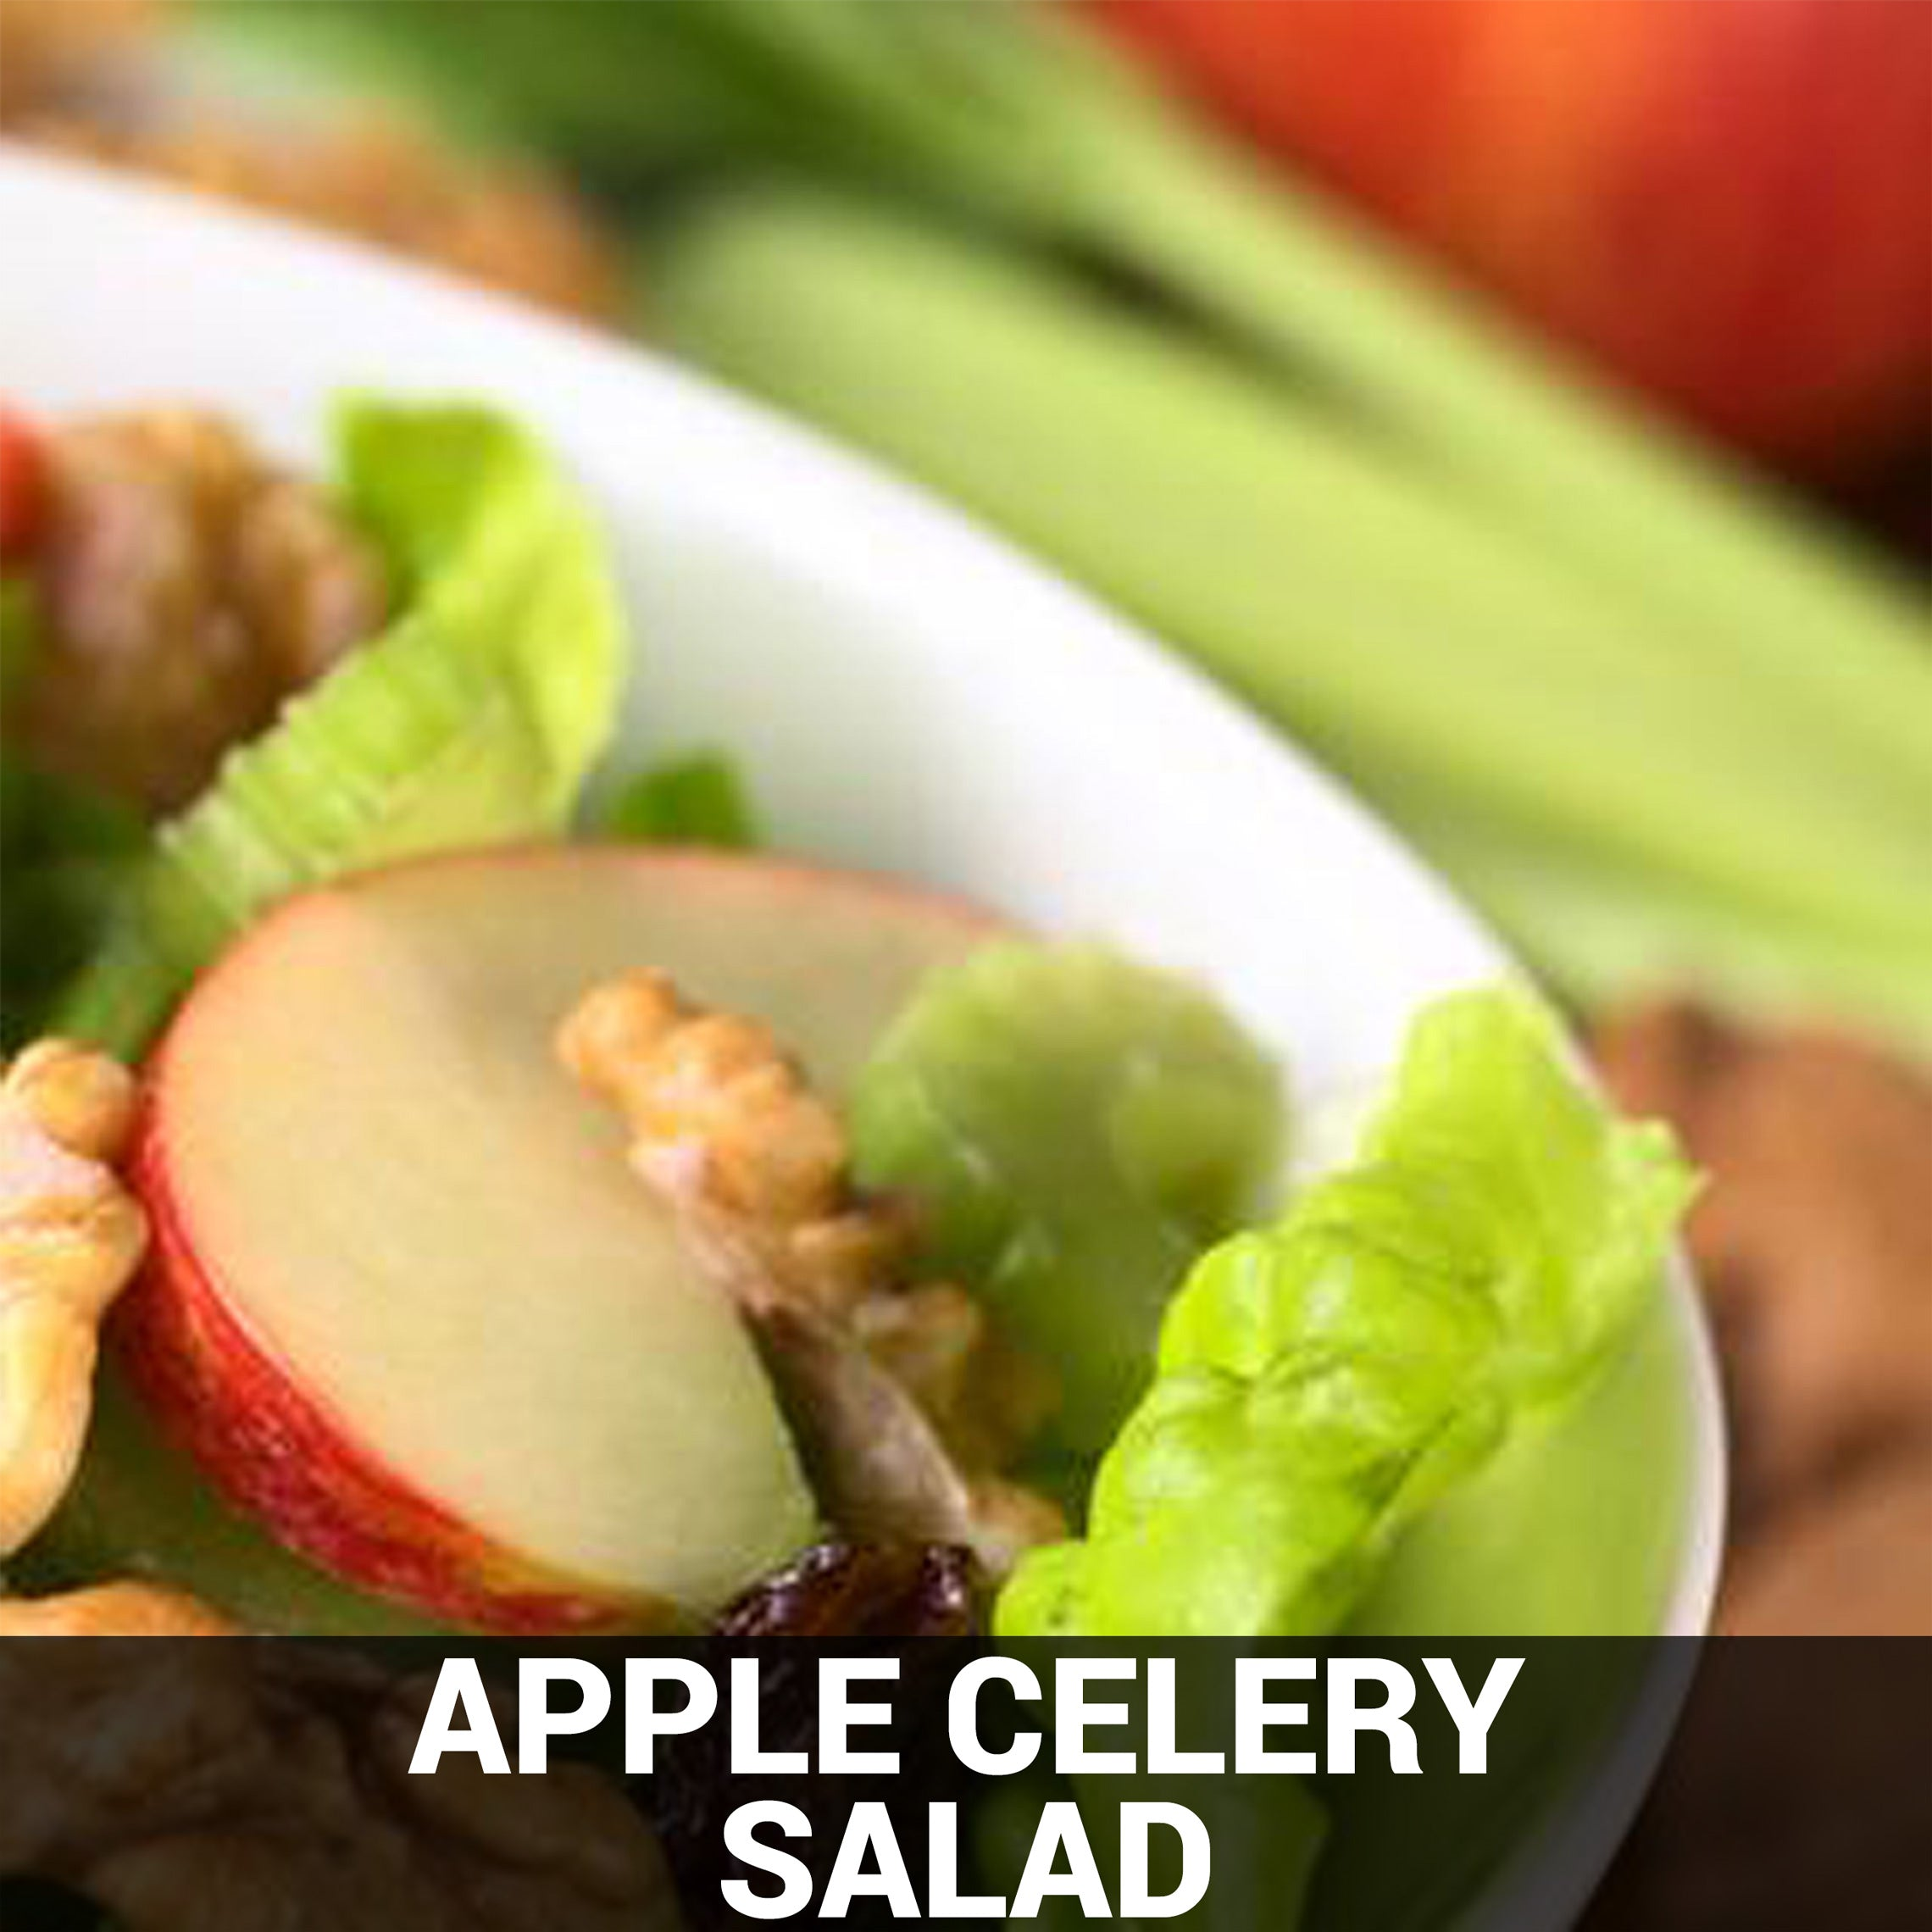 Apple Celery Salad Recipe - Foods Alive